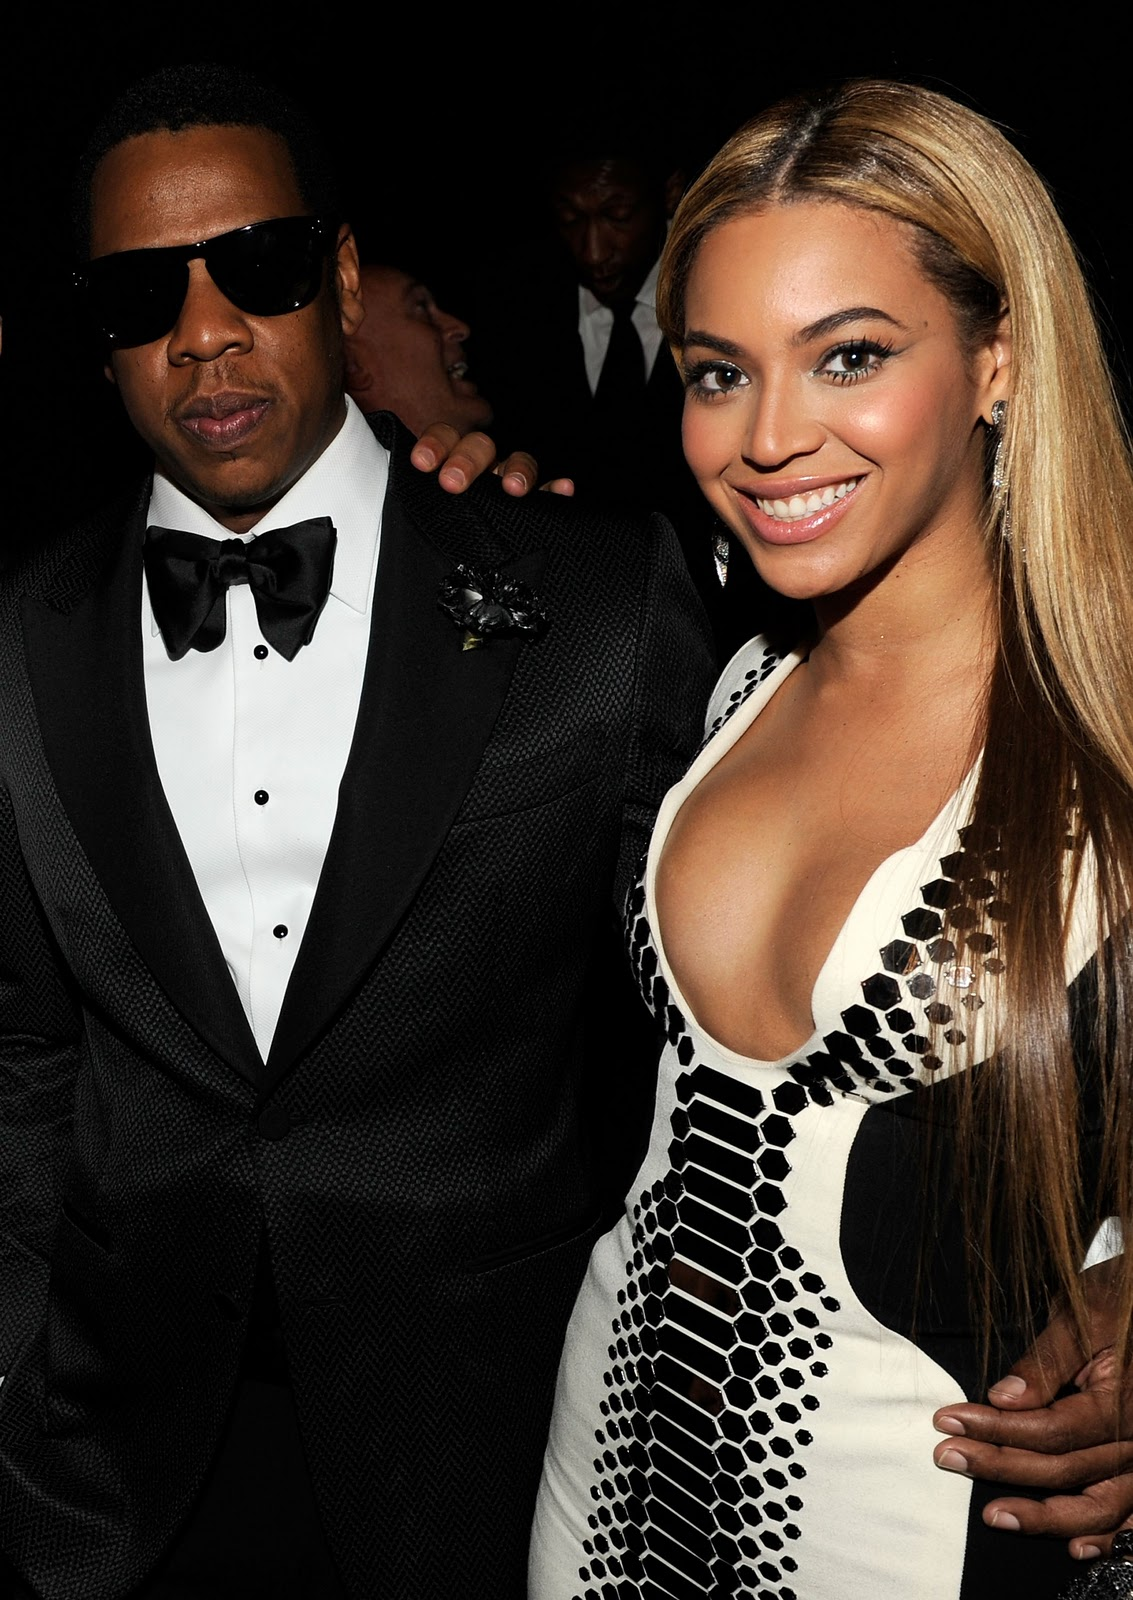 beyonce and jay z walking